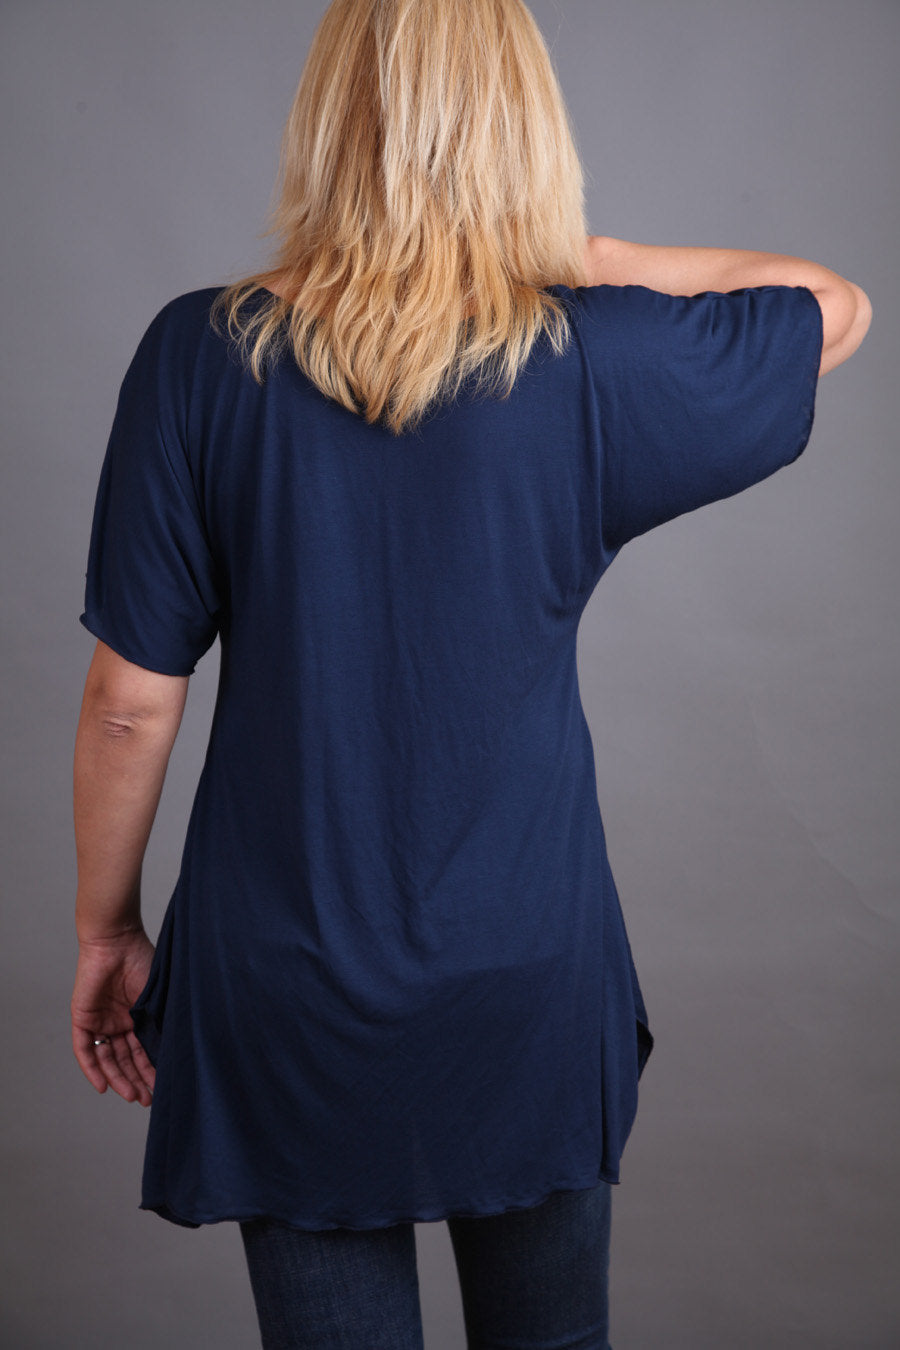 Tunic, Long tunic with short sleeves, Dark blue tunic by FancyProject - CO-HANA-VL